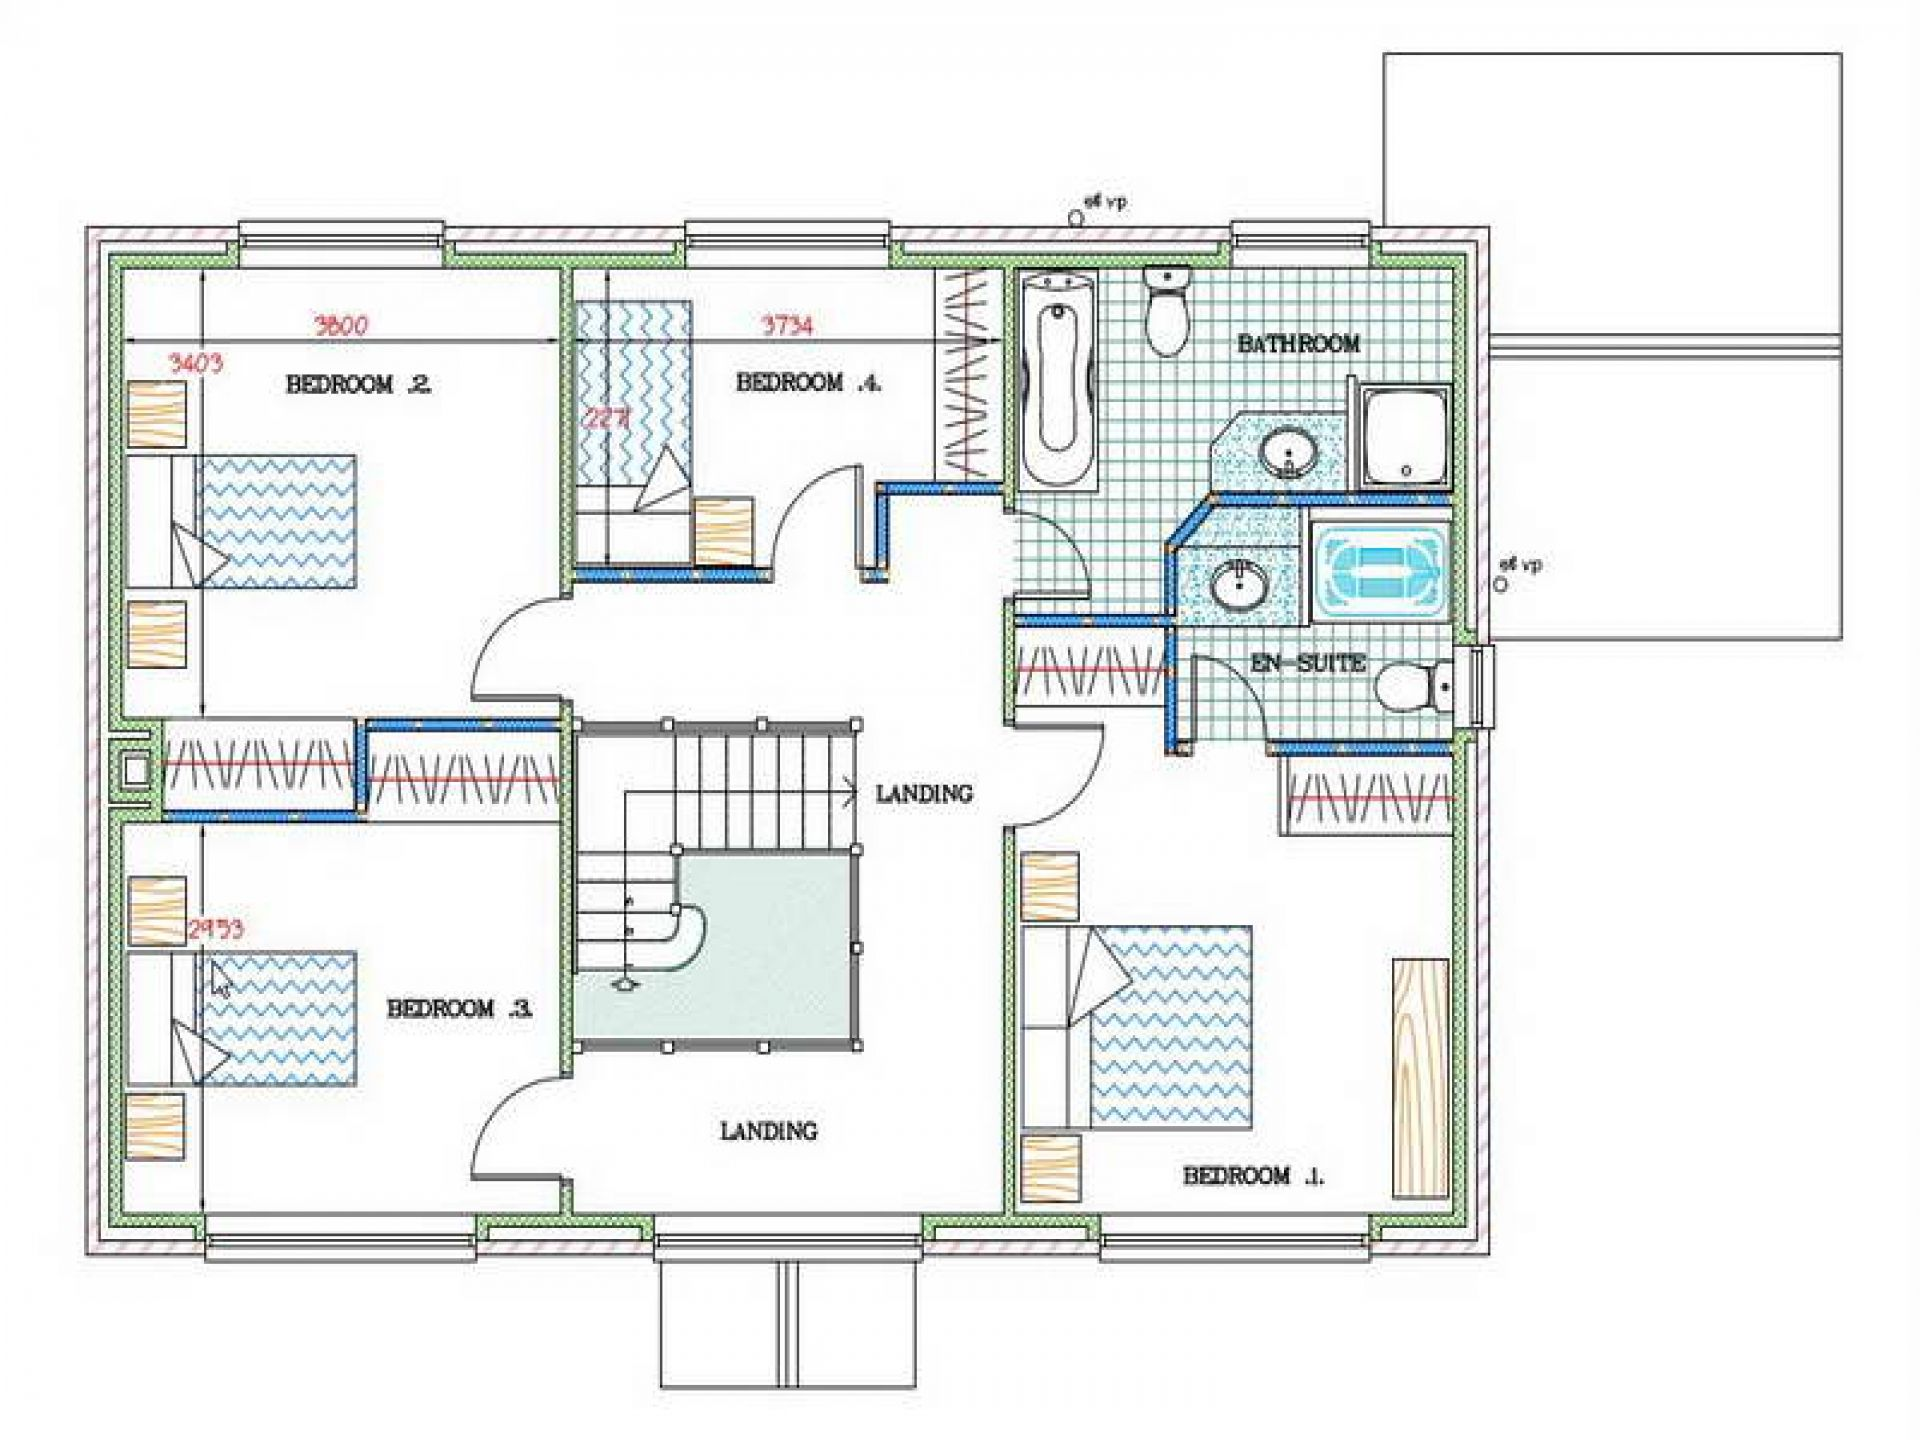 Image Of Afbeeldingsresultaat voor illustrator floor plan furniture